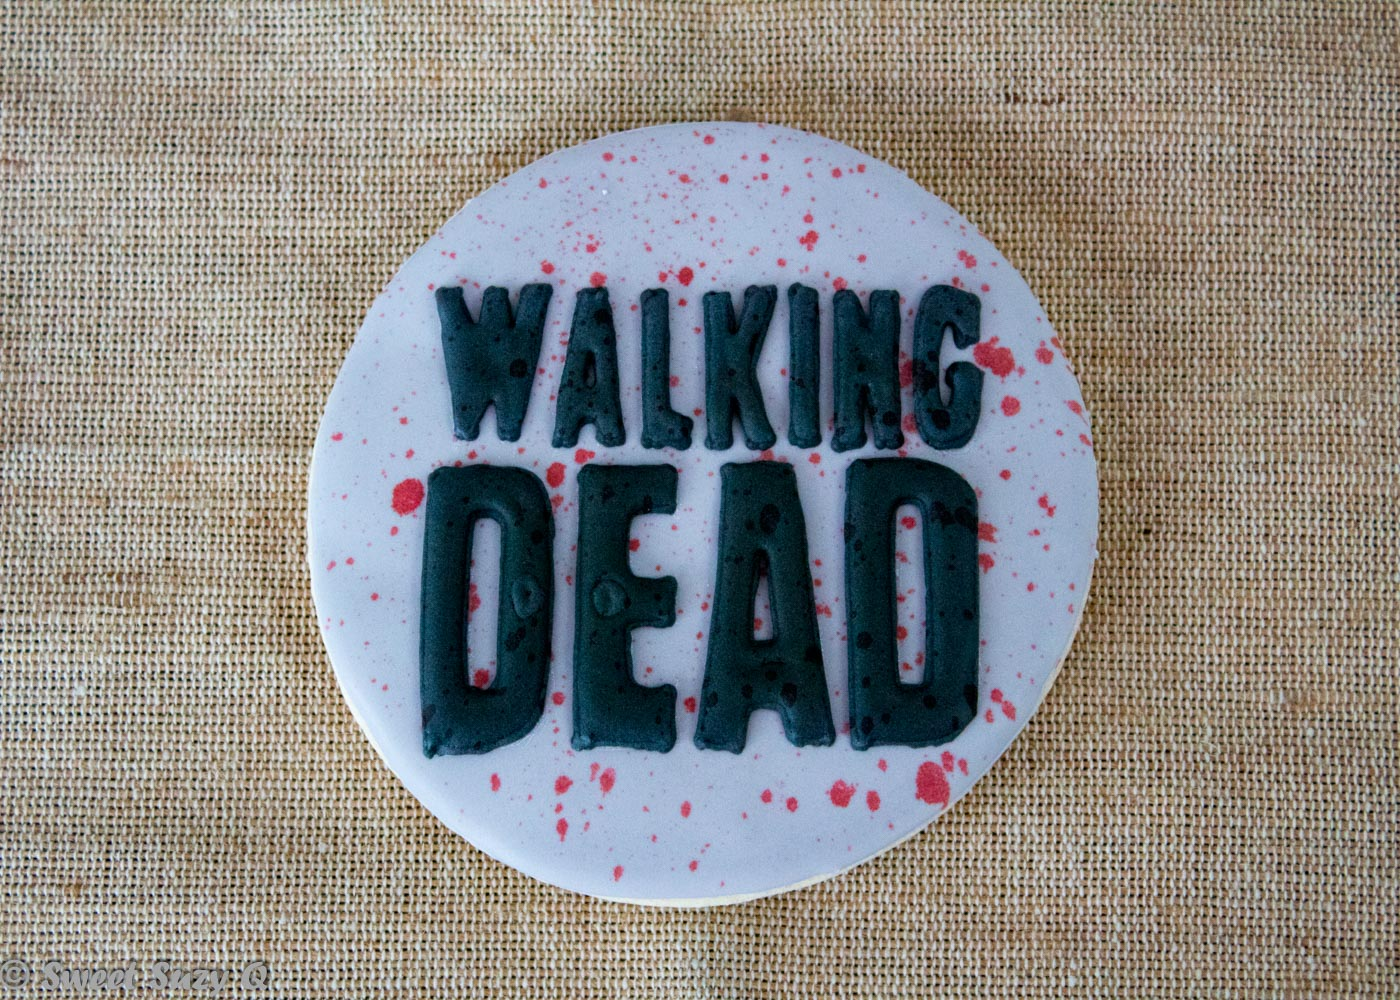 Walking Dead title cookie